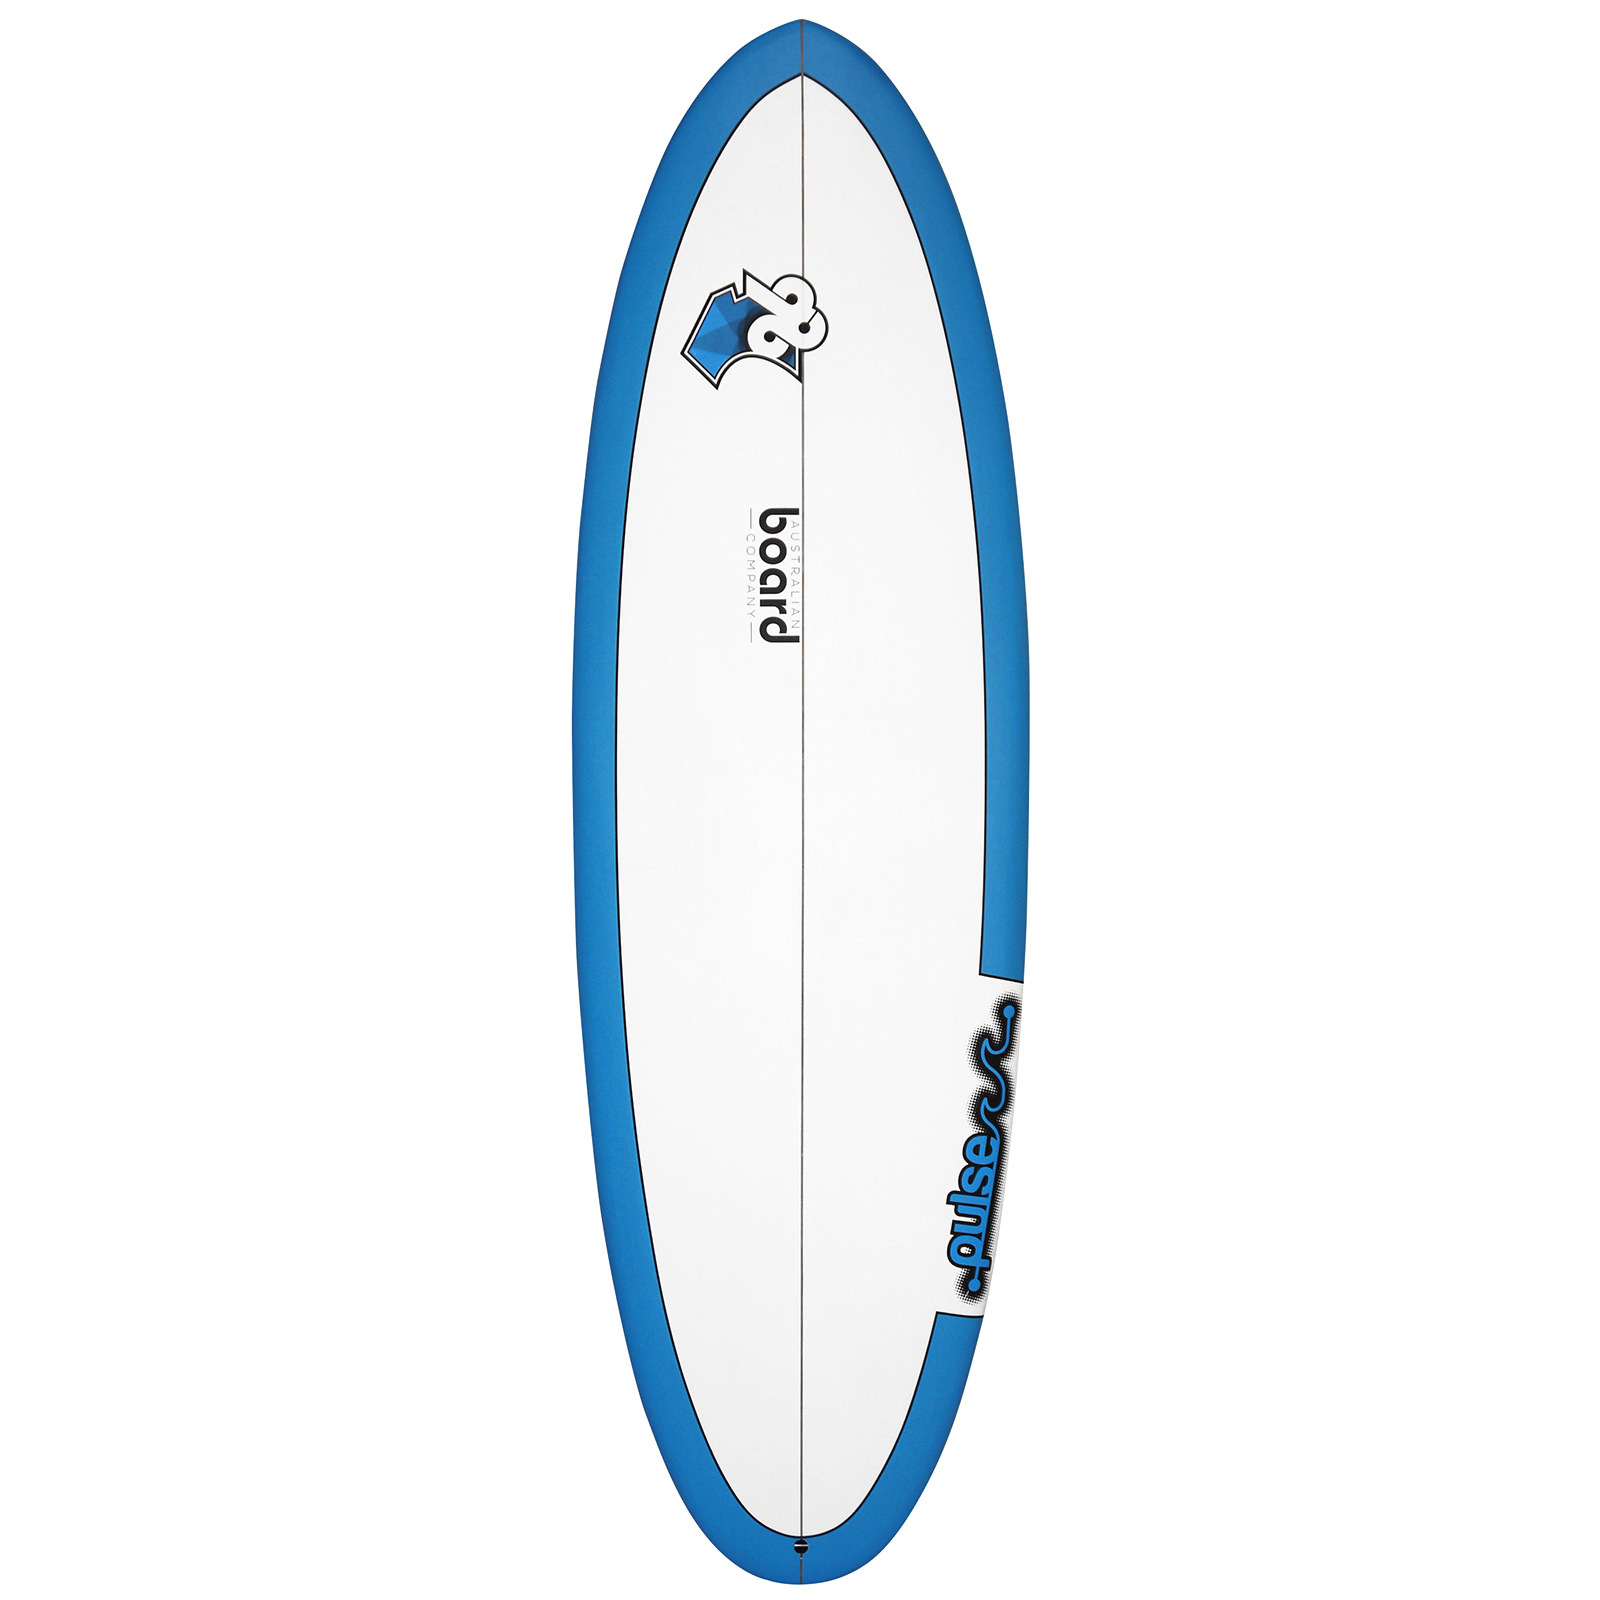 5ft 11inch Pulse Series Round Tail Shortboard Surfboard by Australian Board Company (ABC) - Matt Finish